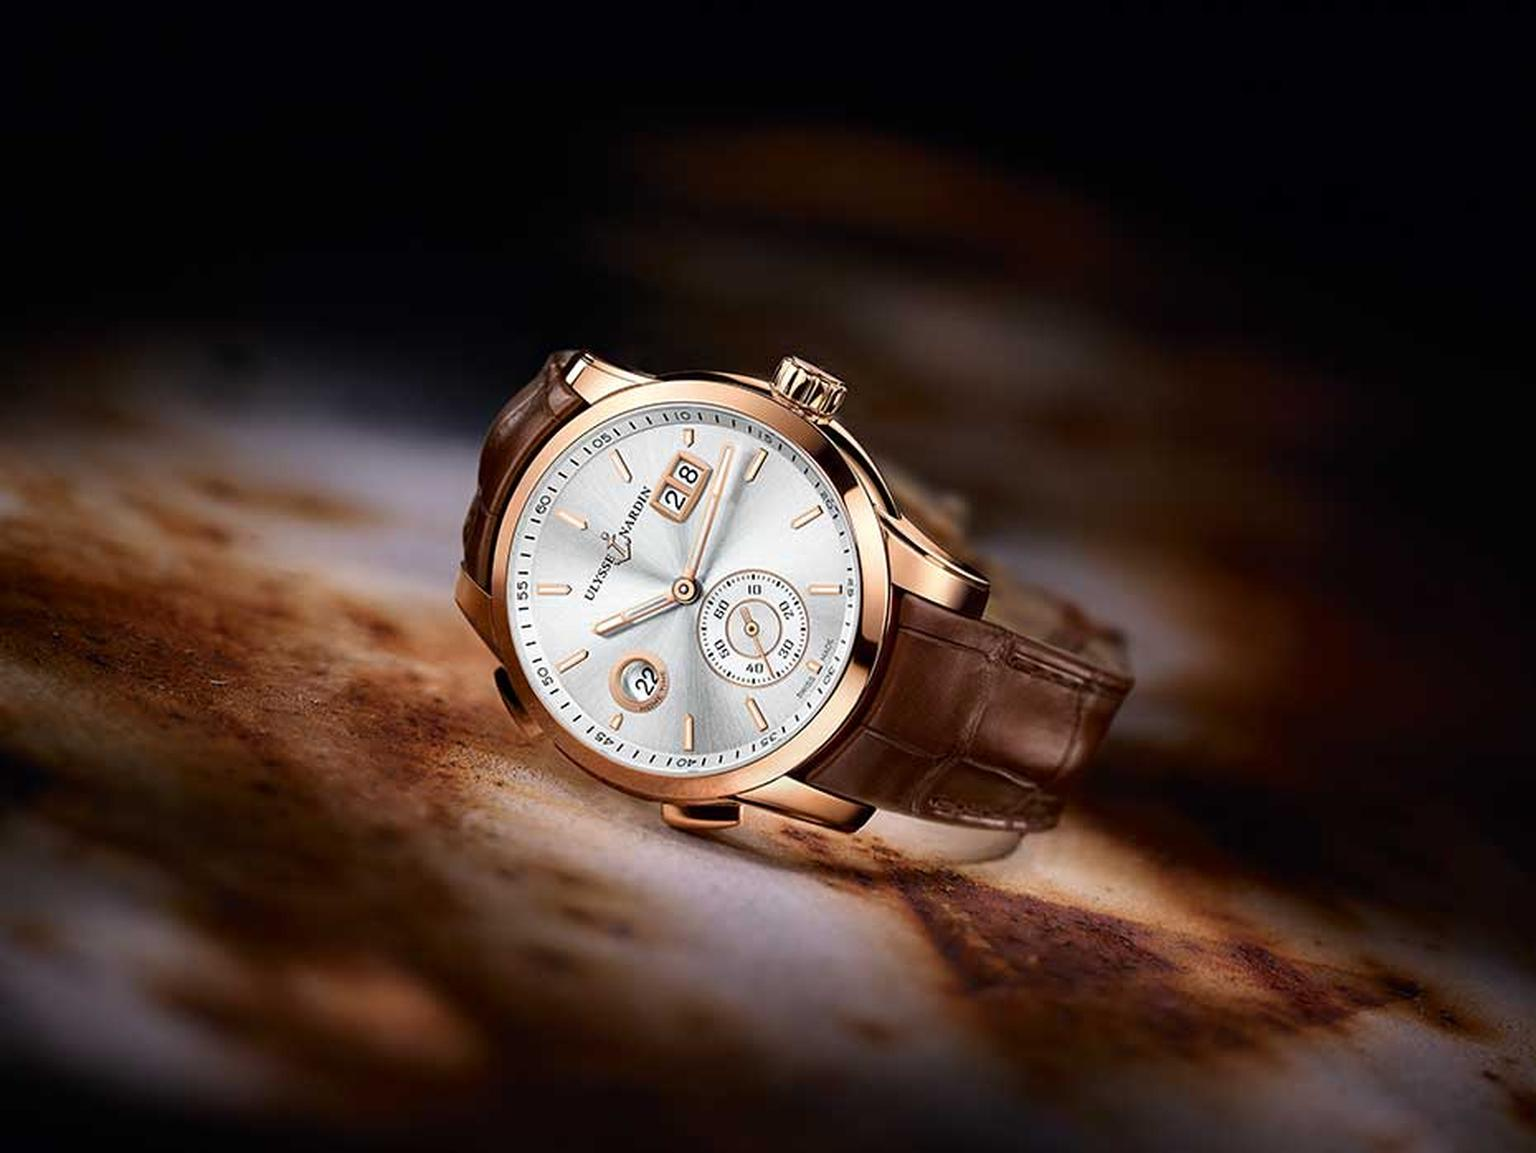 Ulysse Nardin 2014 Dual Time Manufacture watch.